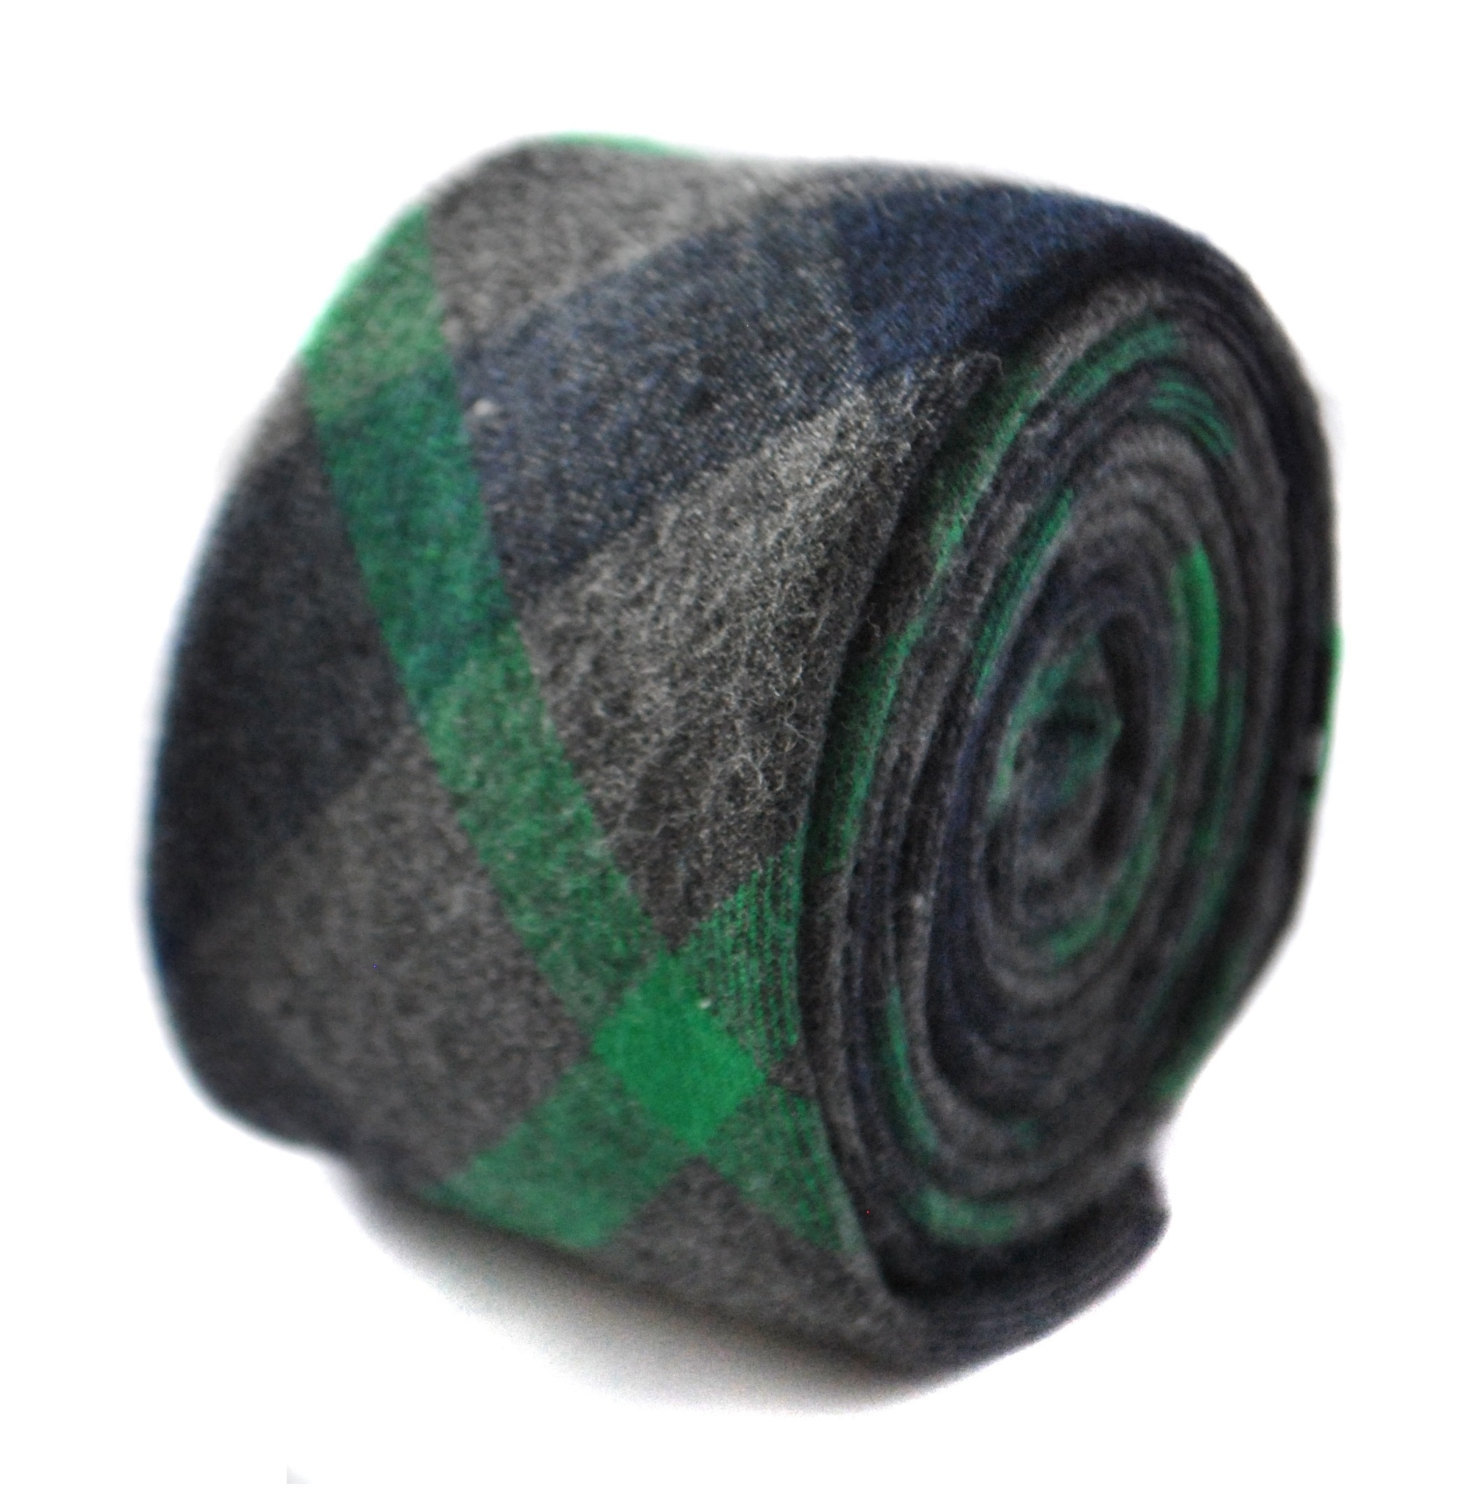 dark green and grey wool check style tie by Frederick Thomas FT1815